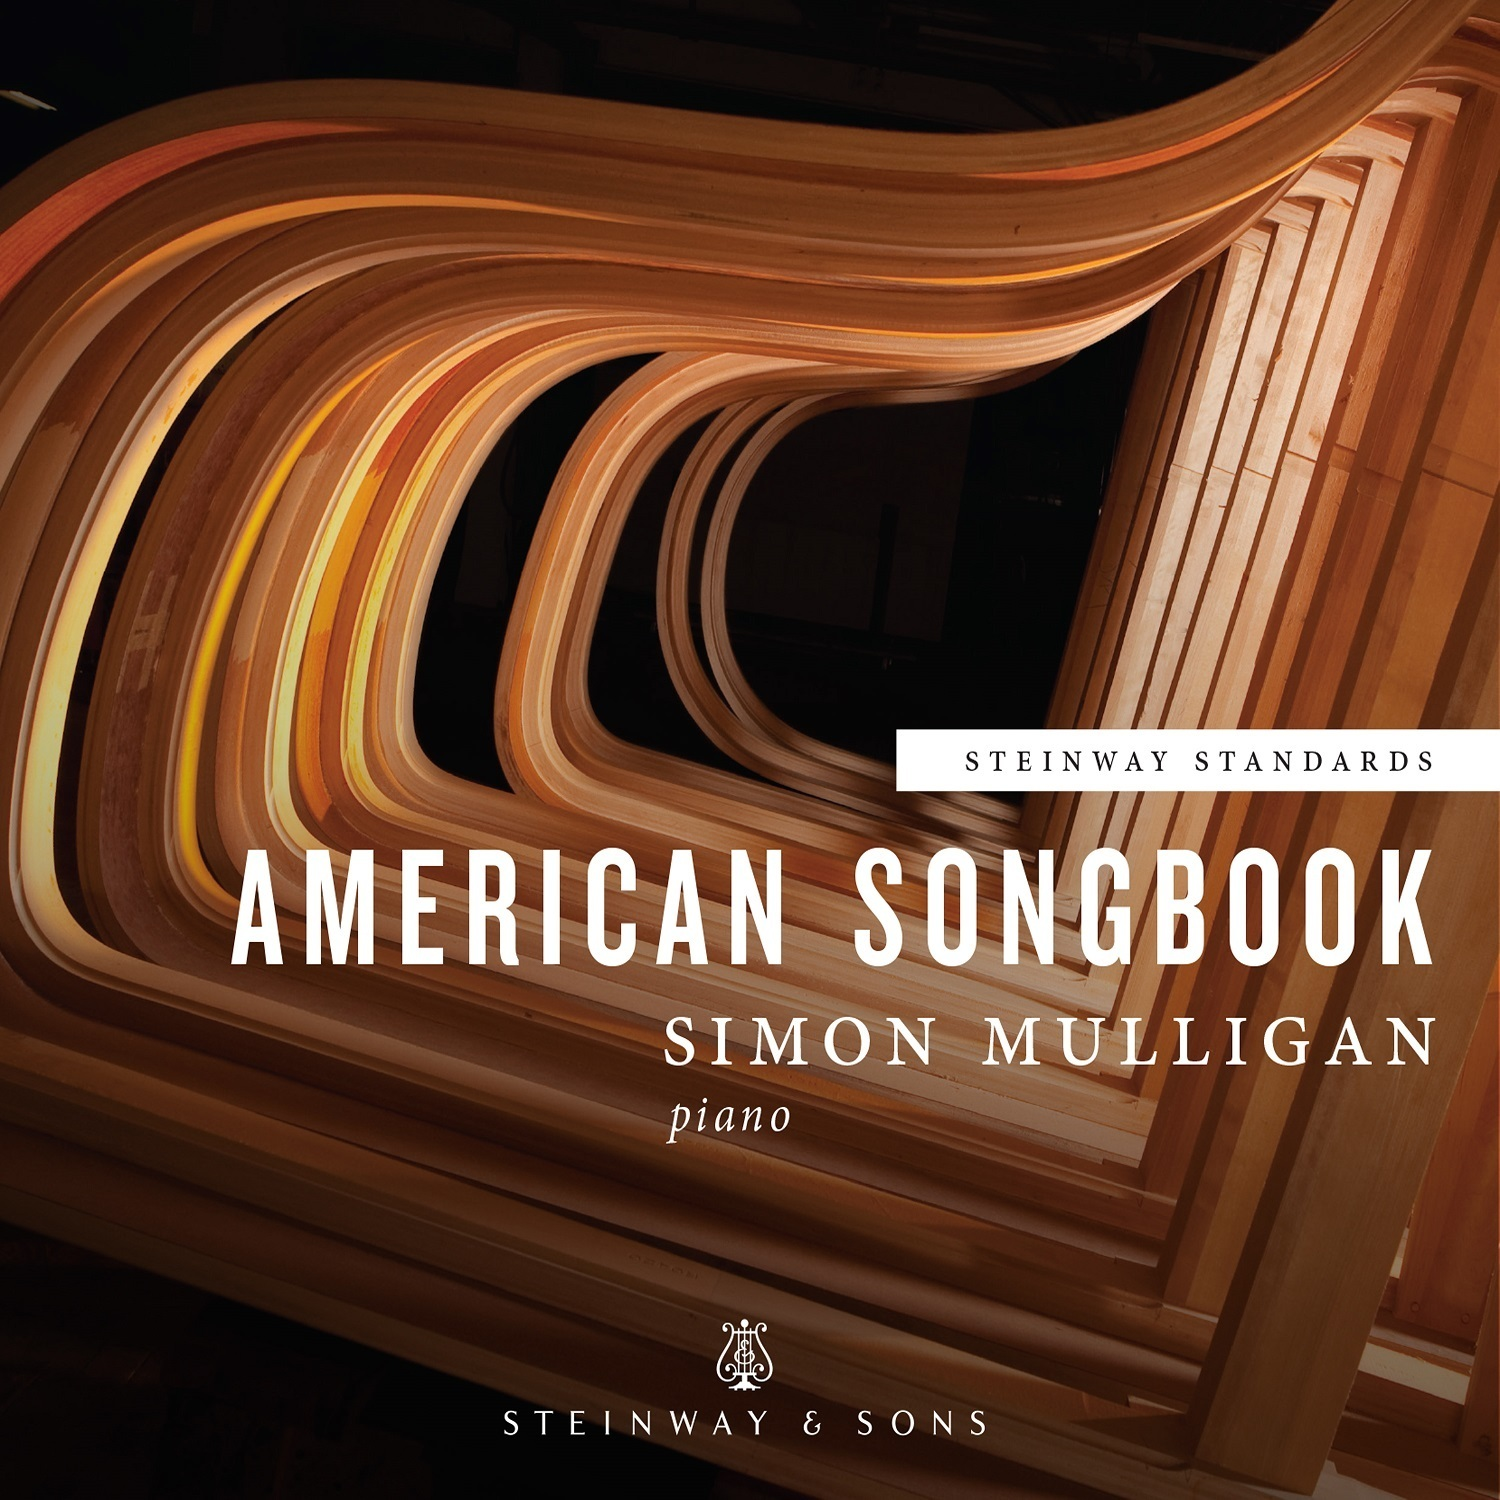 Steinway Standards - American Songbook / Simon Mulligan